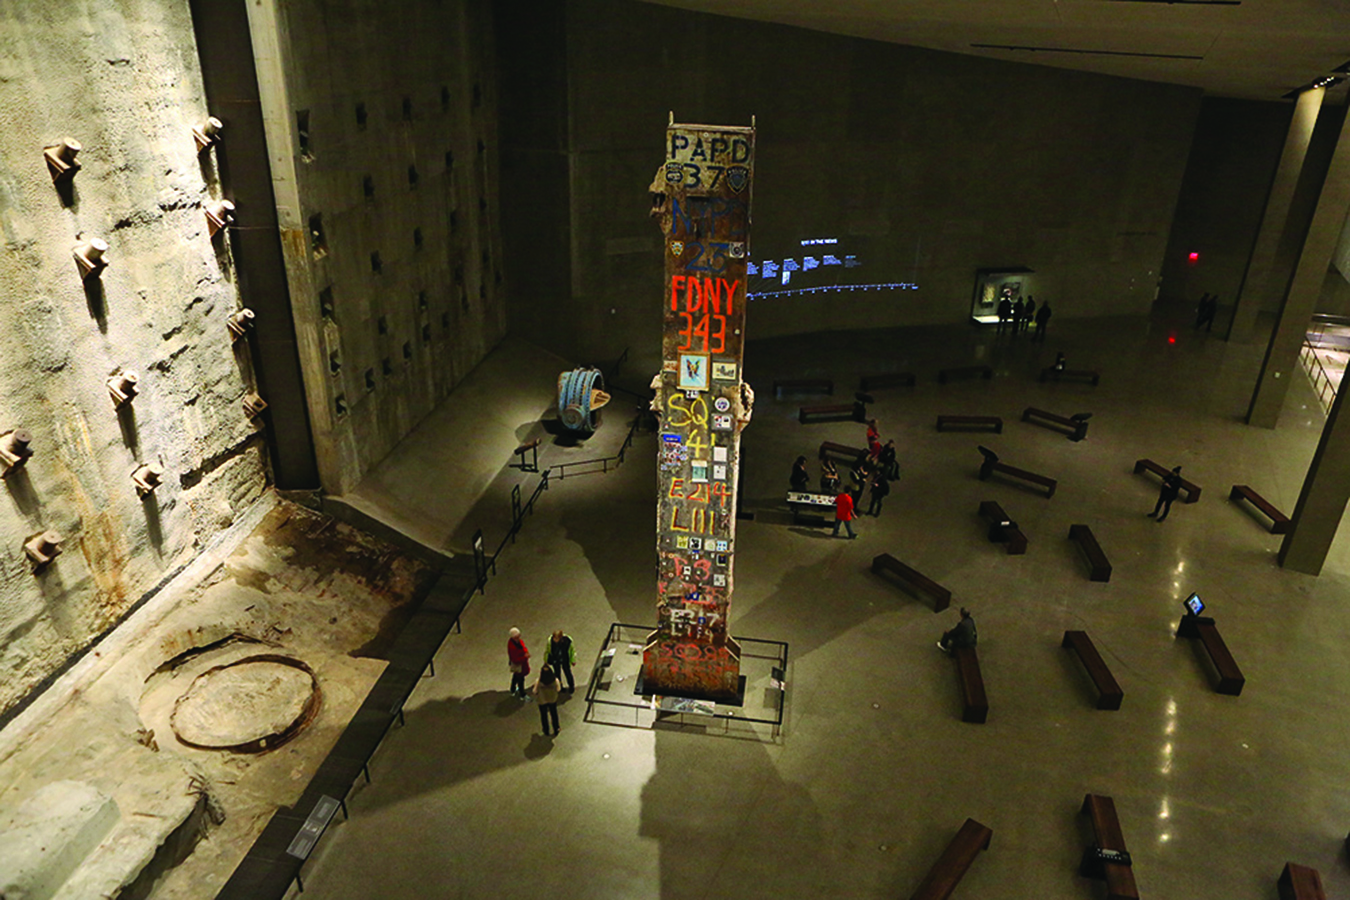 1. The 36-foot-tall Last Column was a symbol of resilience to the thousands of recovery workers who spent months excavating the World Trade Center site after 9/11. Part of the core structure of the South Tower, the 58-ton beam was covered with words and numbers, pictures, and tributes by workers during the recovery effort. Photo: Robert Adam Mayer.